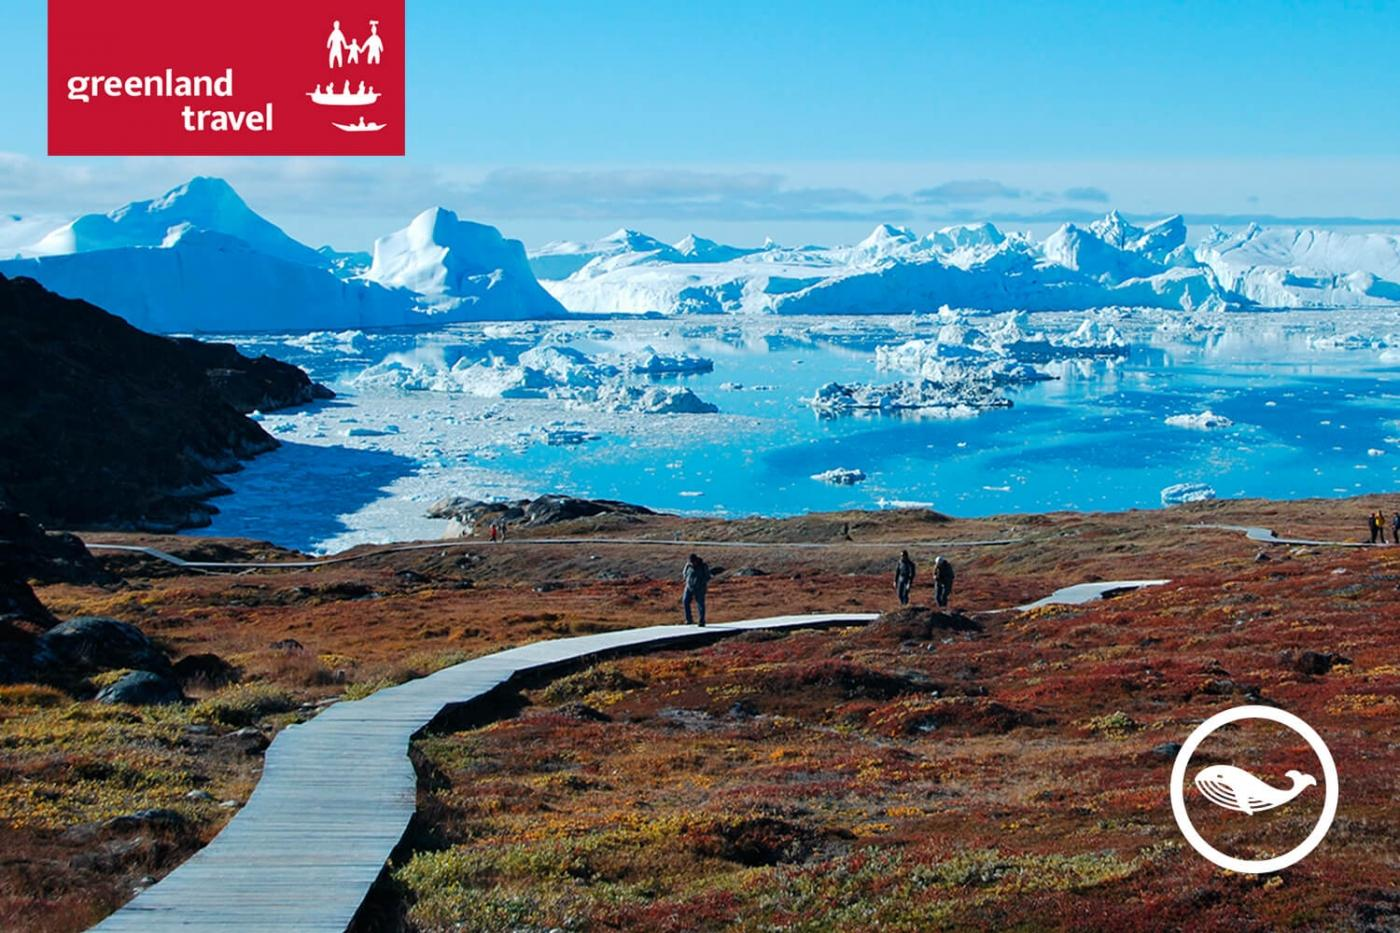 Greenland Travel – QUICK GETAWAY! 4 days in arctic paradise